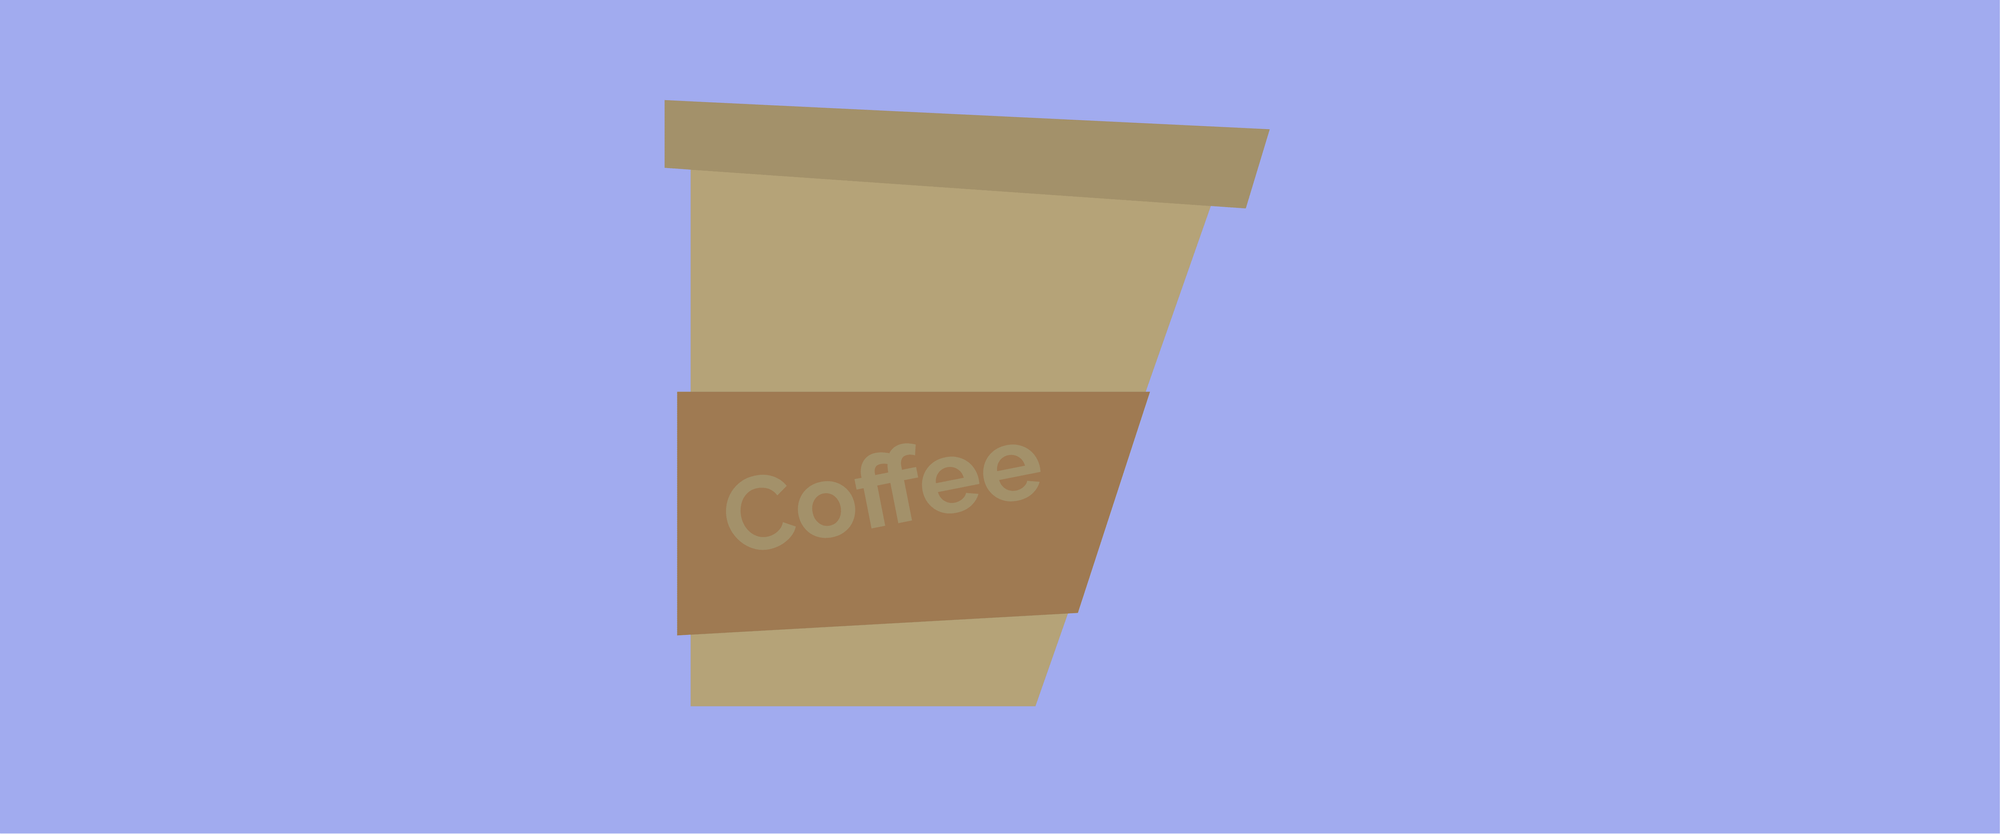 A graphic design of a paper coffee cup.